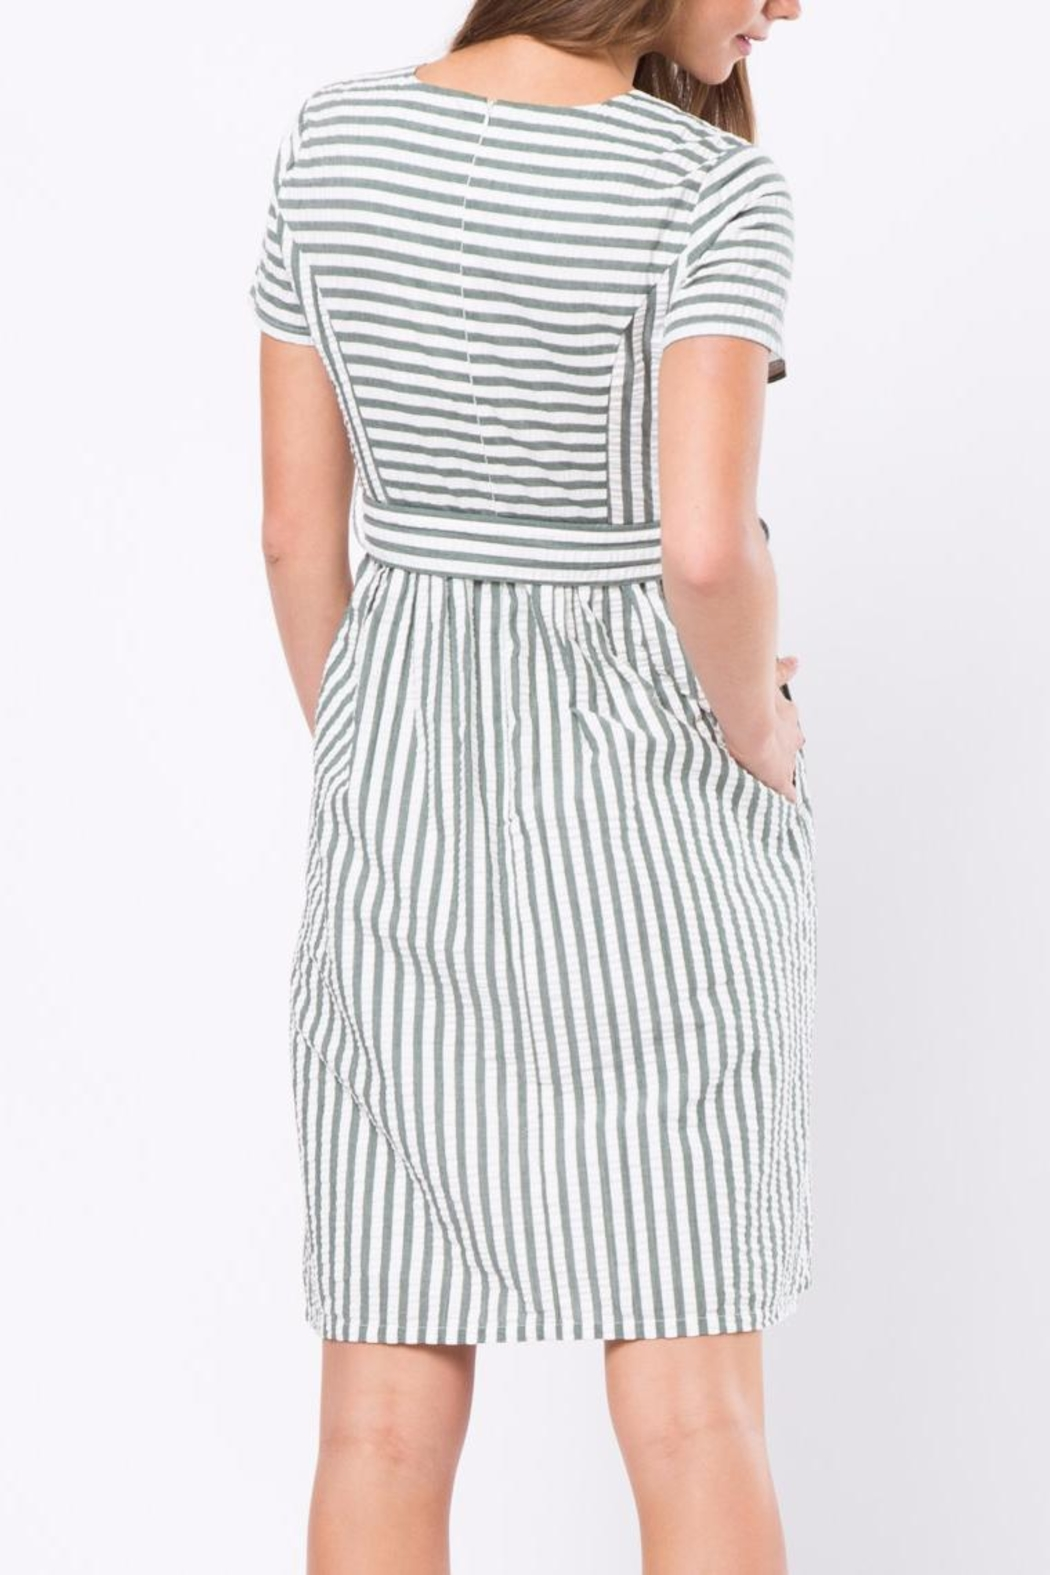 Movint Stripe Dress With Tie Belt - Front Full Image